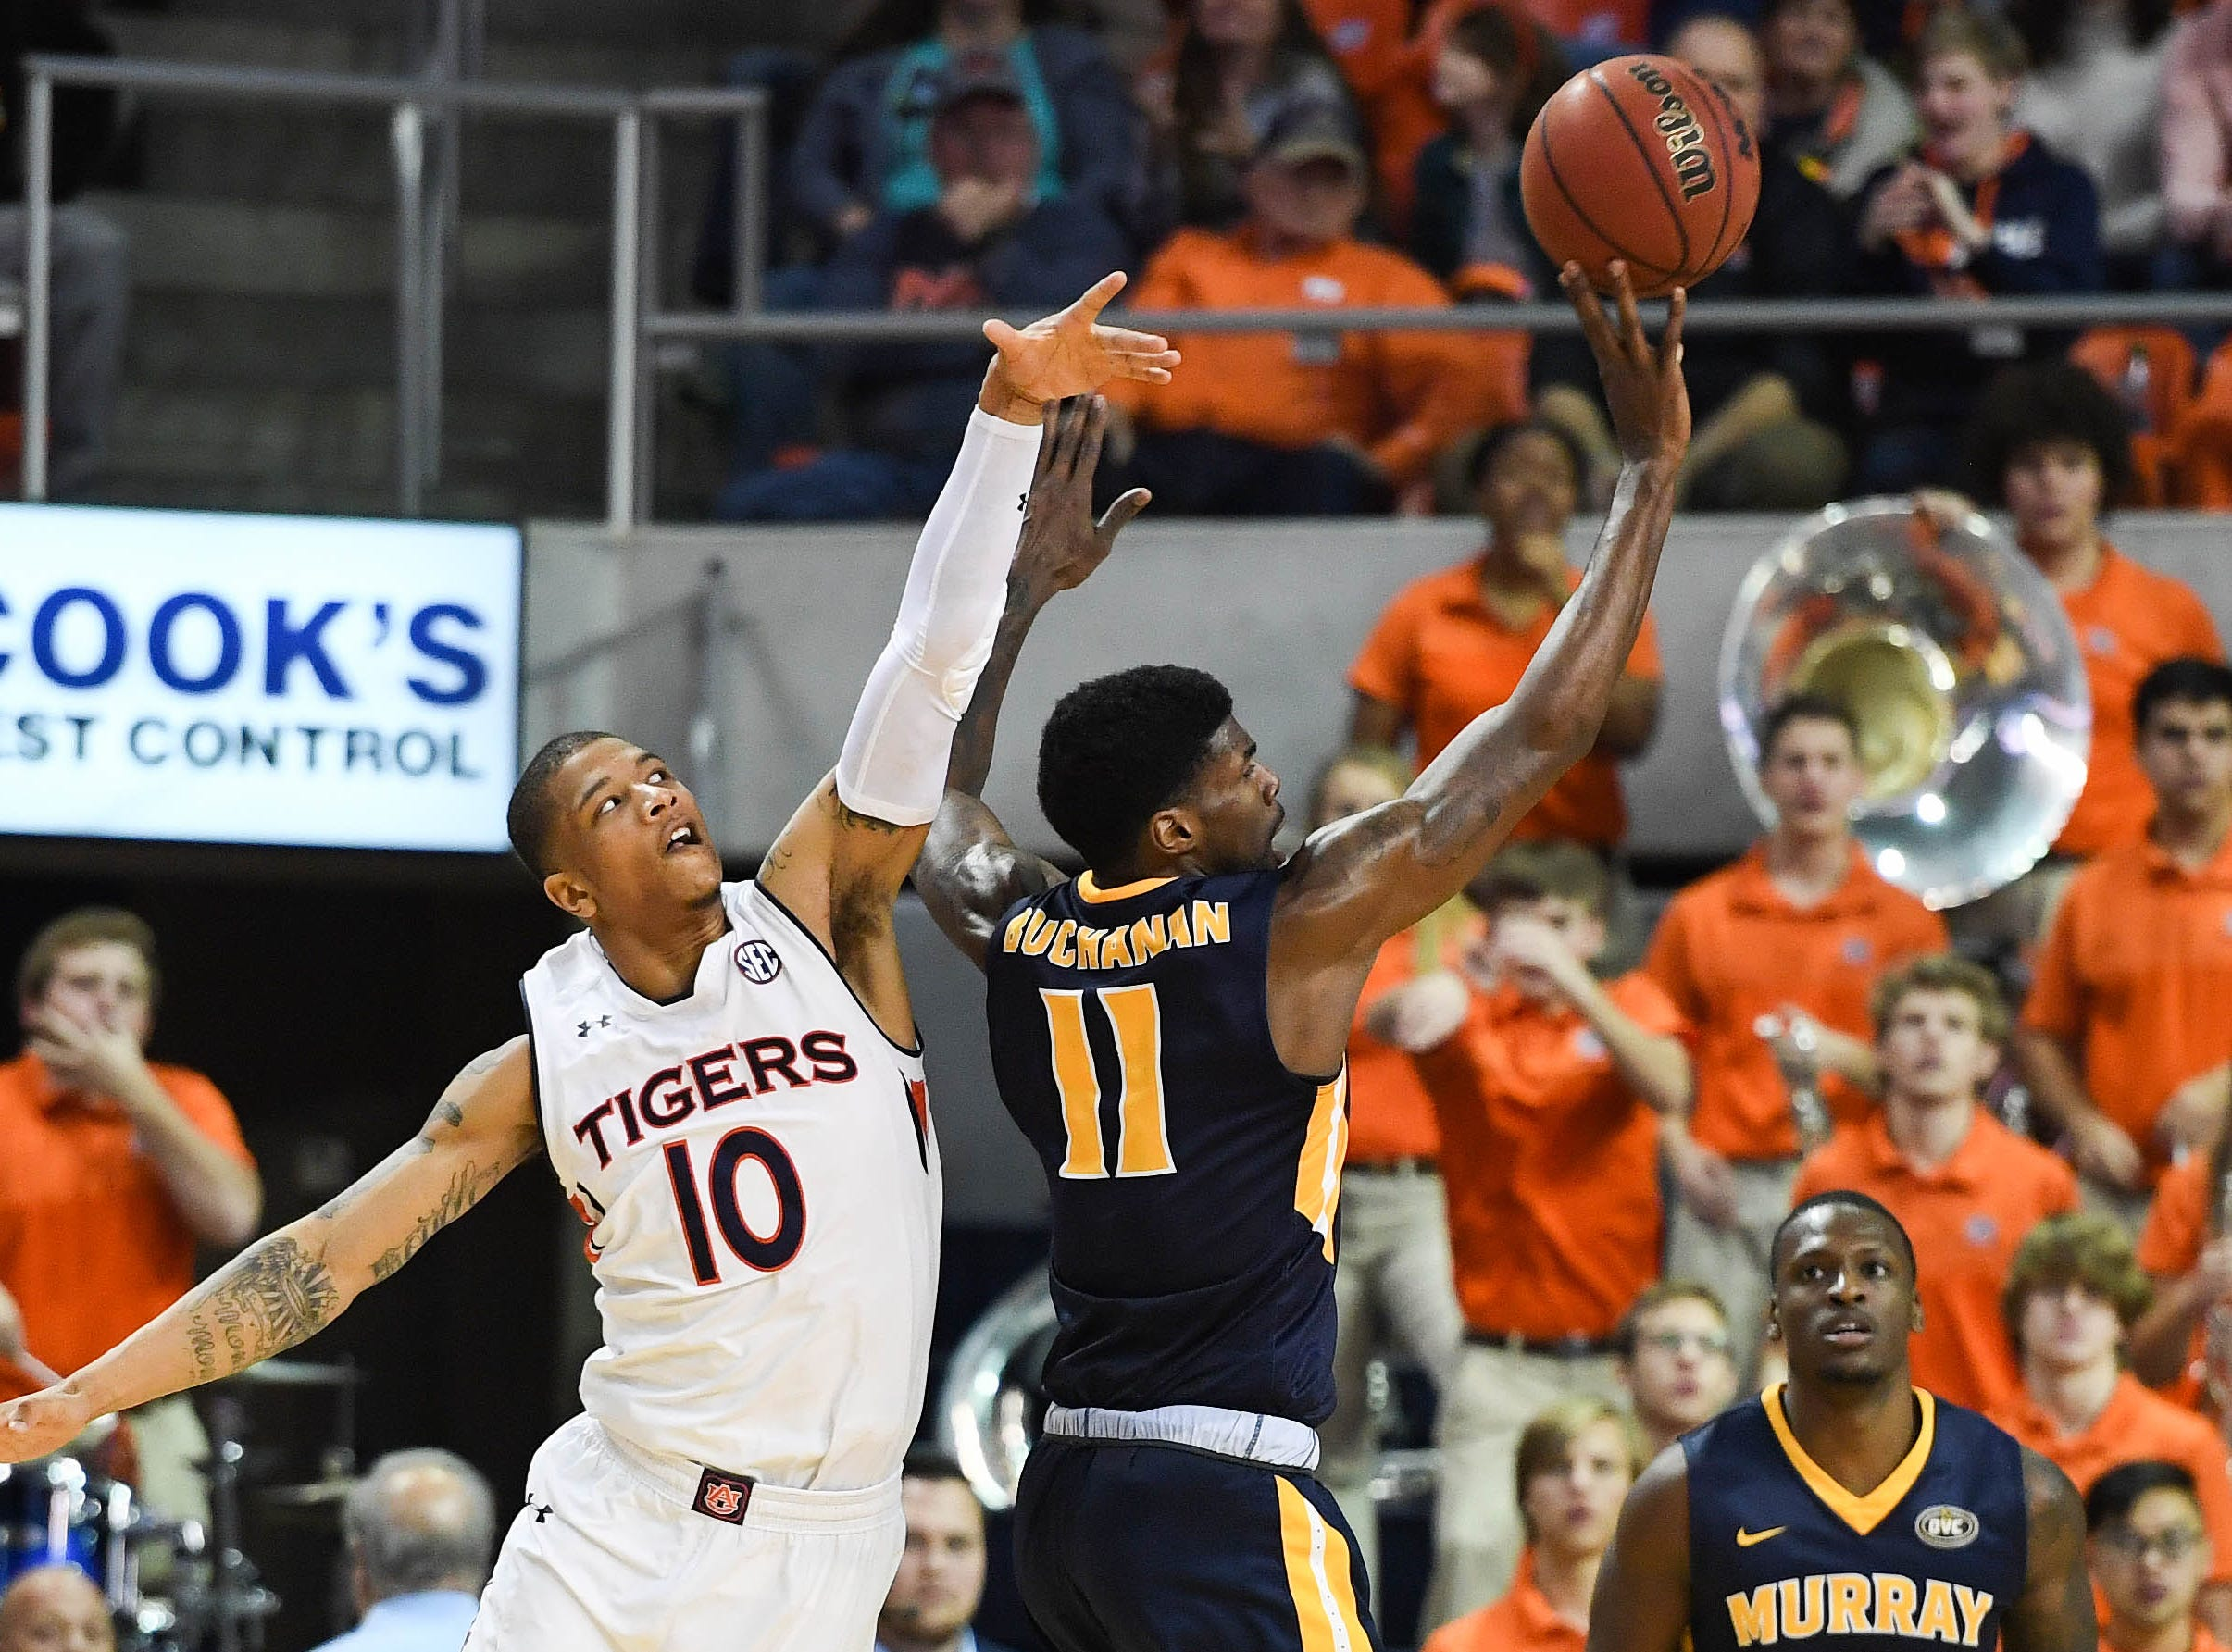 Dec 22, 2018; Auburn, AL, USA; Murray State Racers guard Shaq Buchanan (11) shoots as Auburn Tigers guard Samir Doughty (10) defends during the second half at Auburn Arena. Mandatory Credit: Shanna Lockwood-USA TODAY Sports